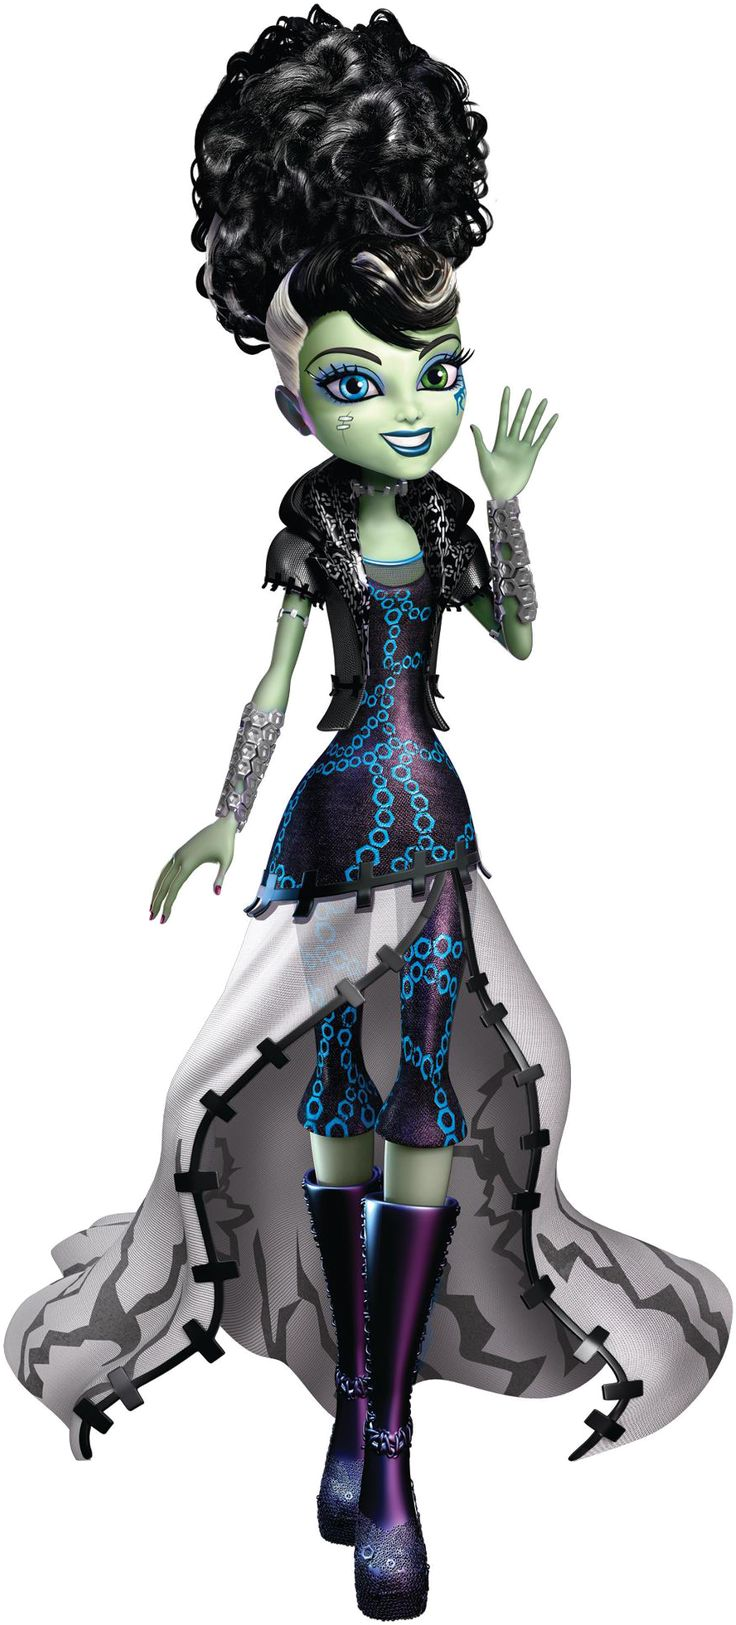 Frankie stein ghouls rule 3D | Monster high - movies ... - photo#29